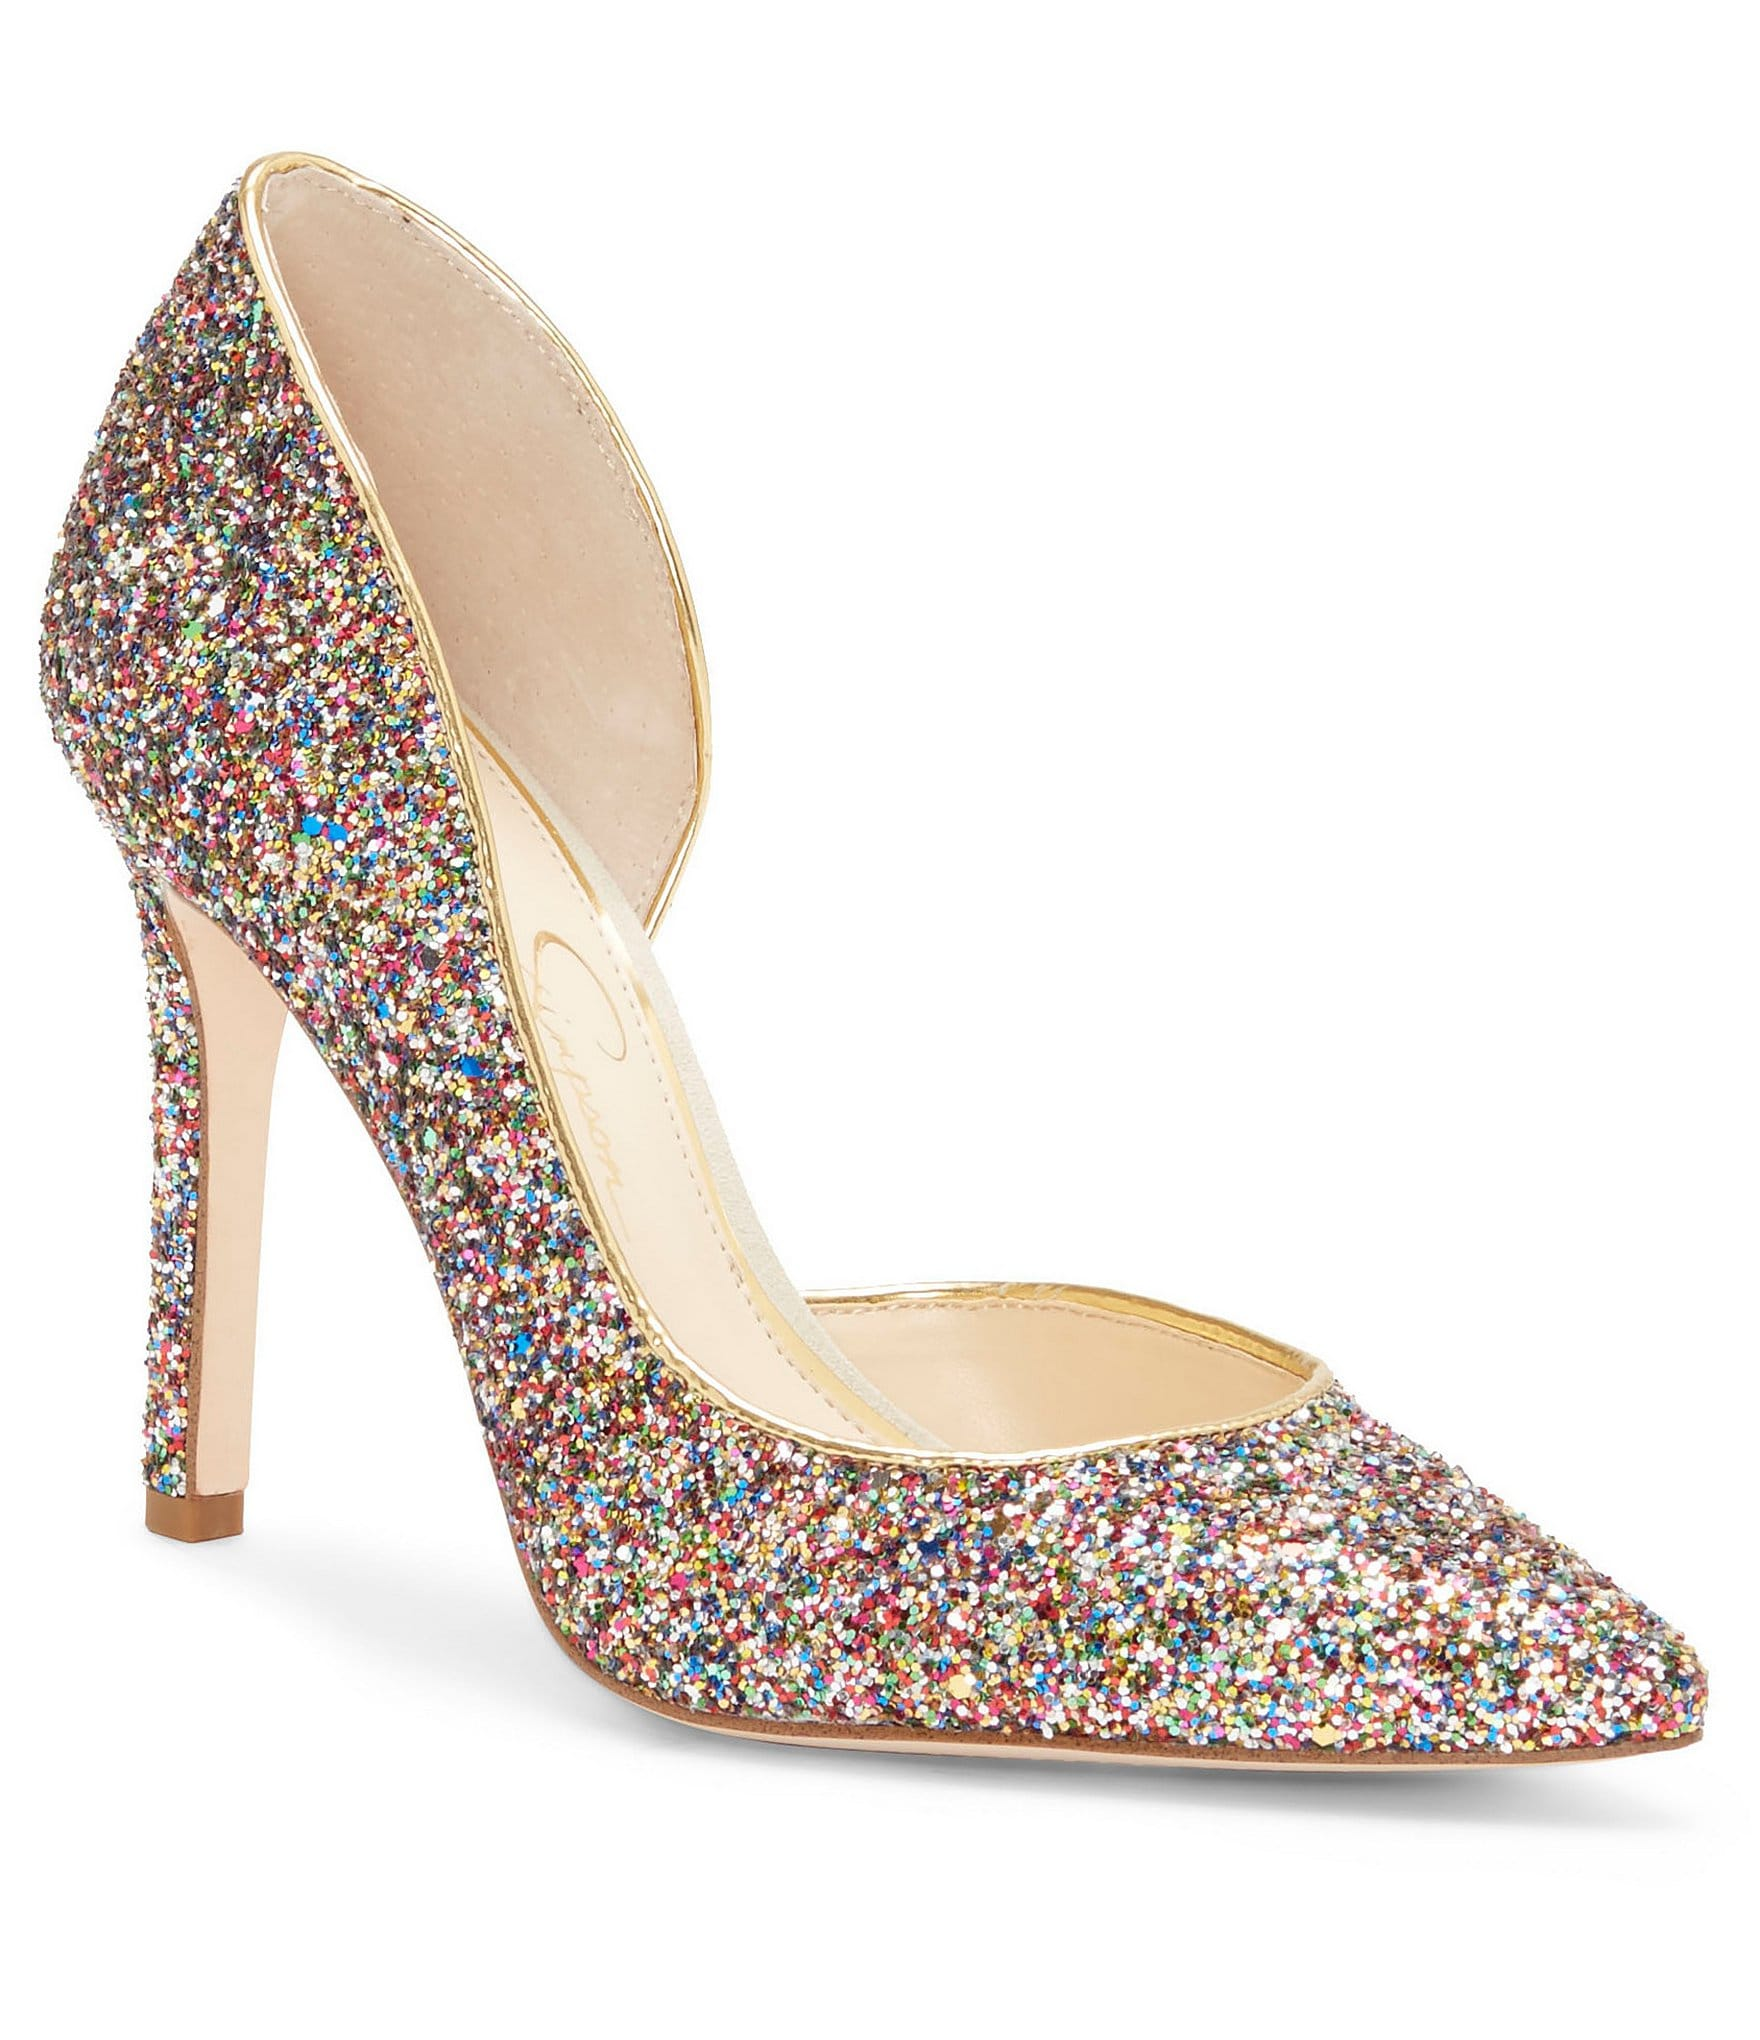 Jessica Simpson Shoes Online Shopping